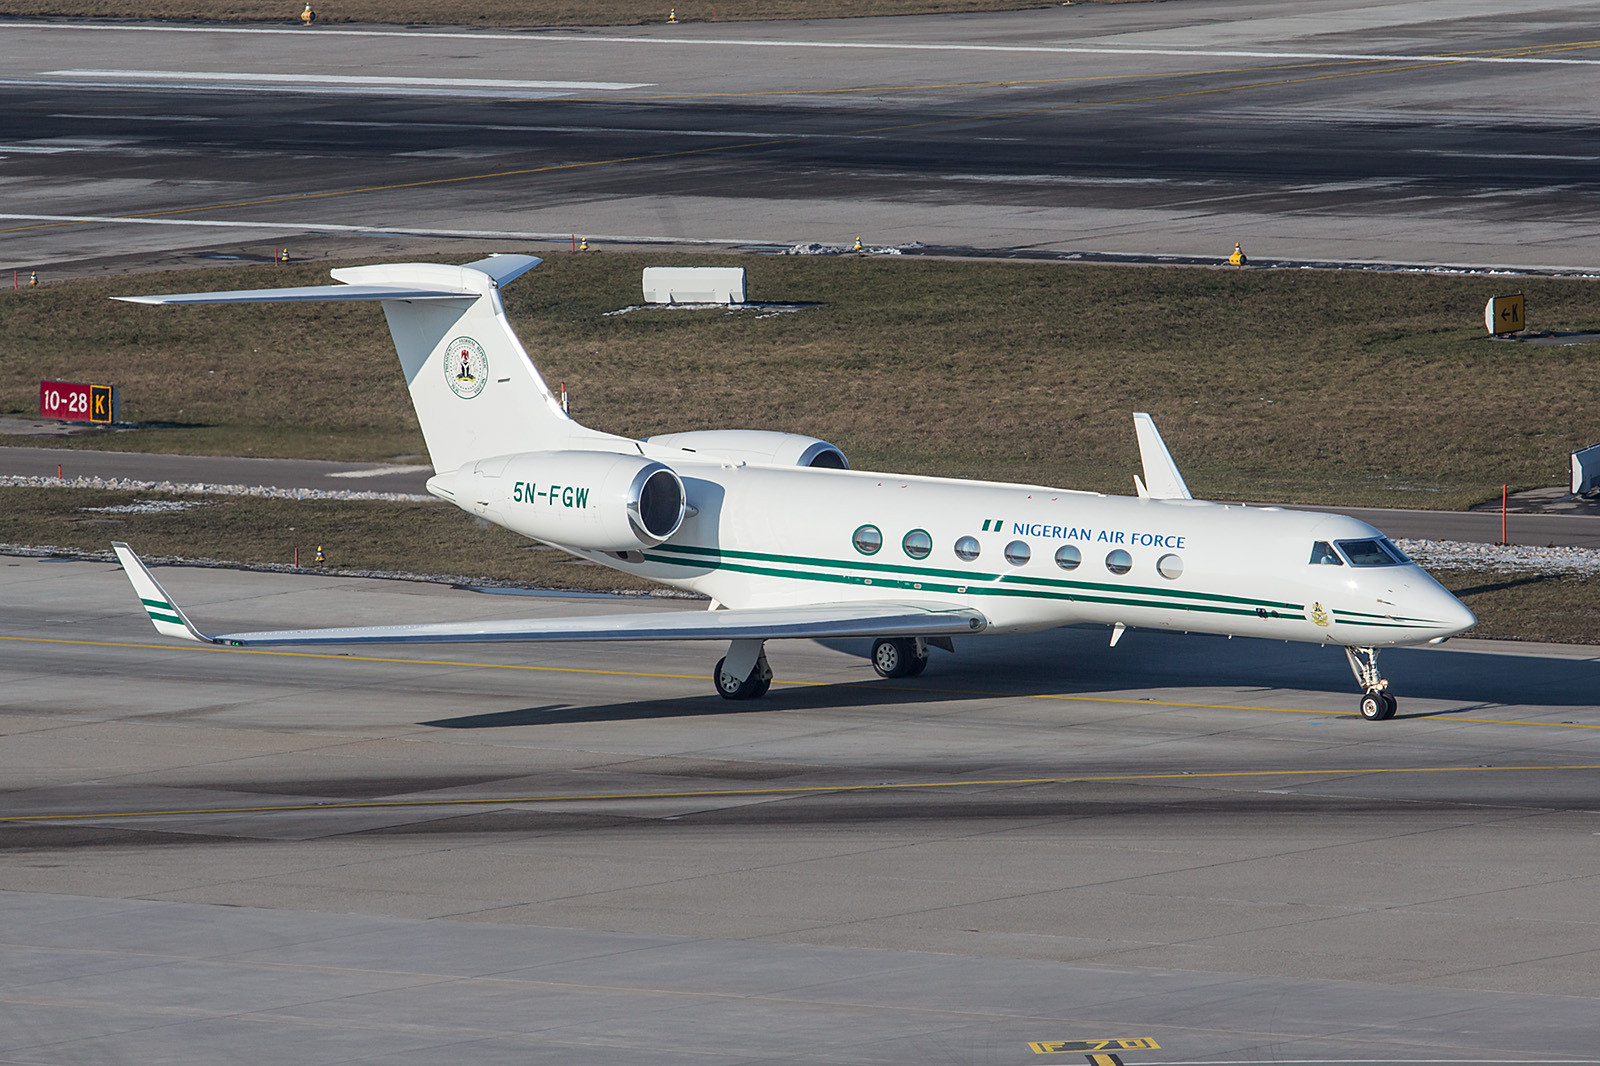 5N-FGW, Gulfstream 550 der Nigerian Air Force